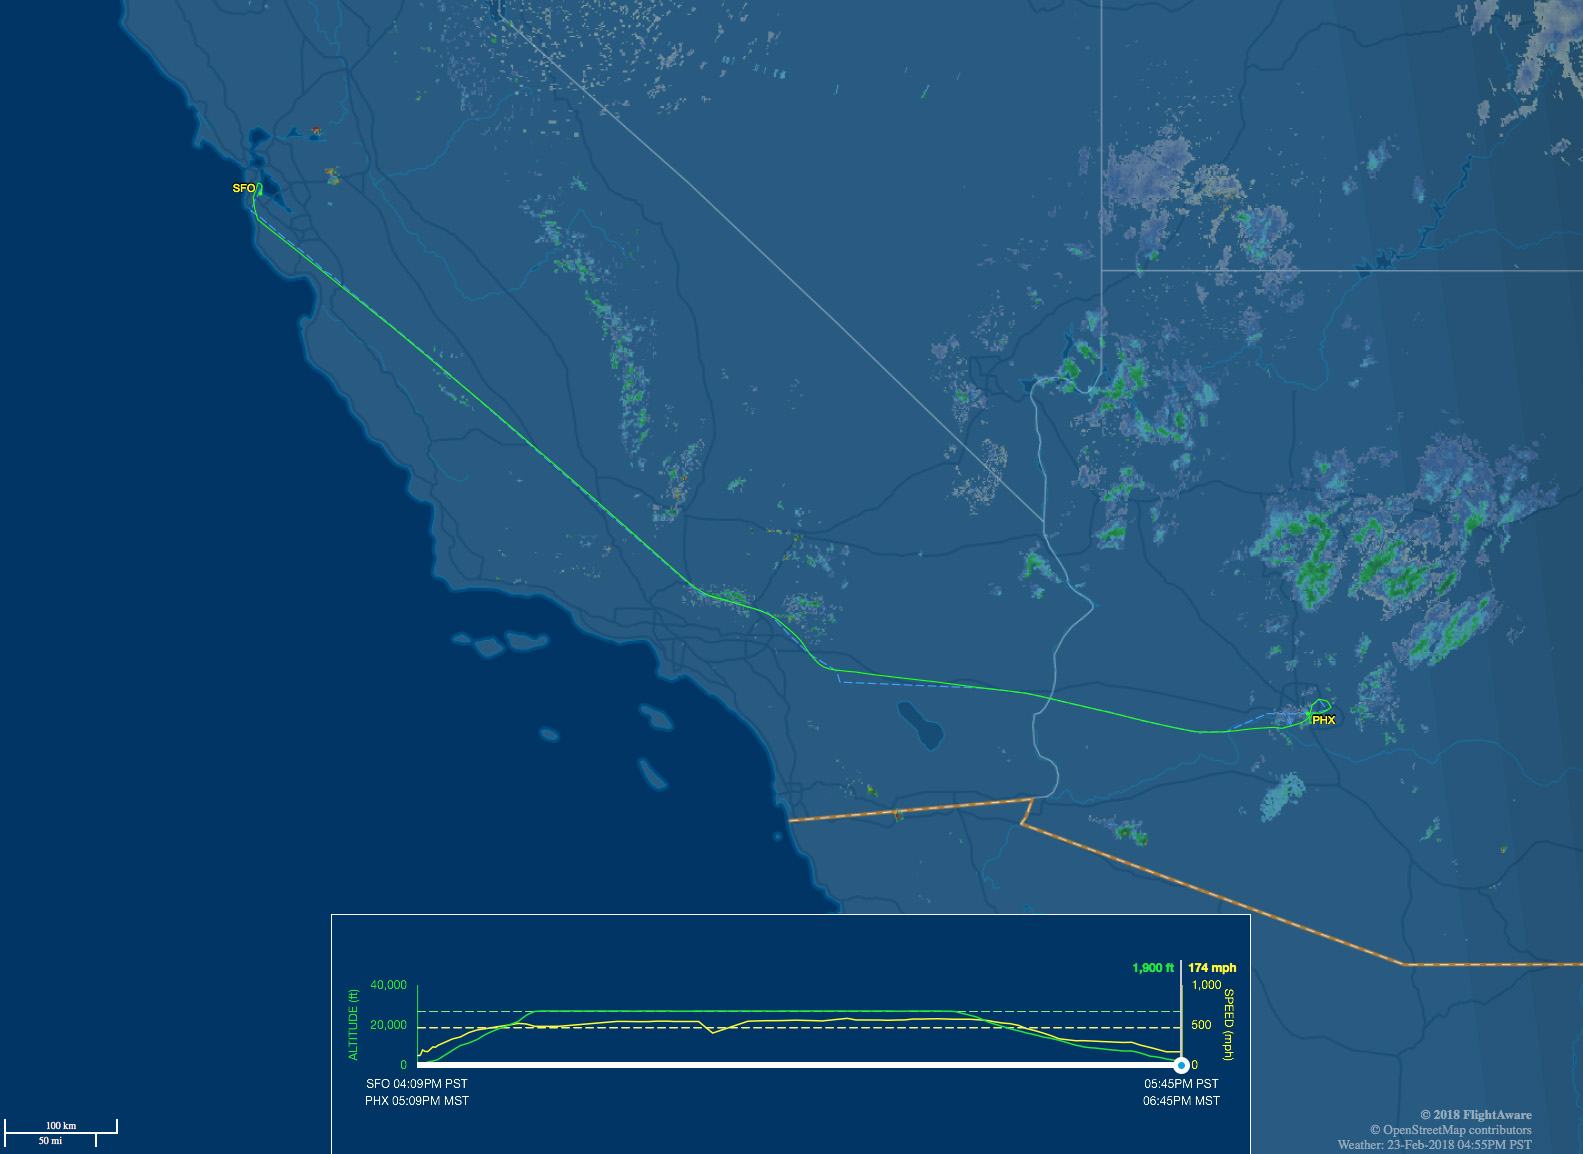 Our route from SFO to PHX